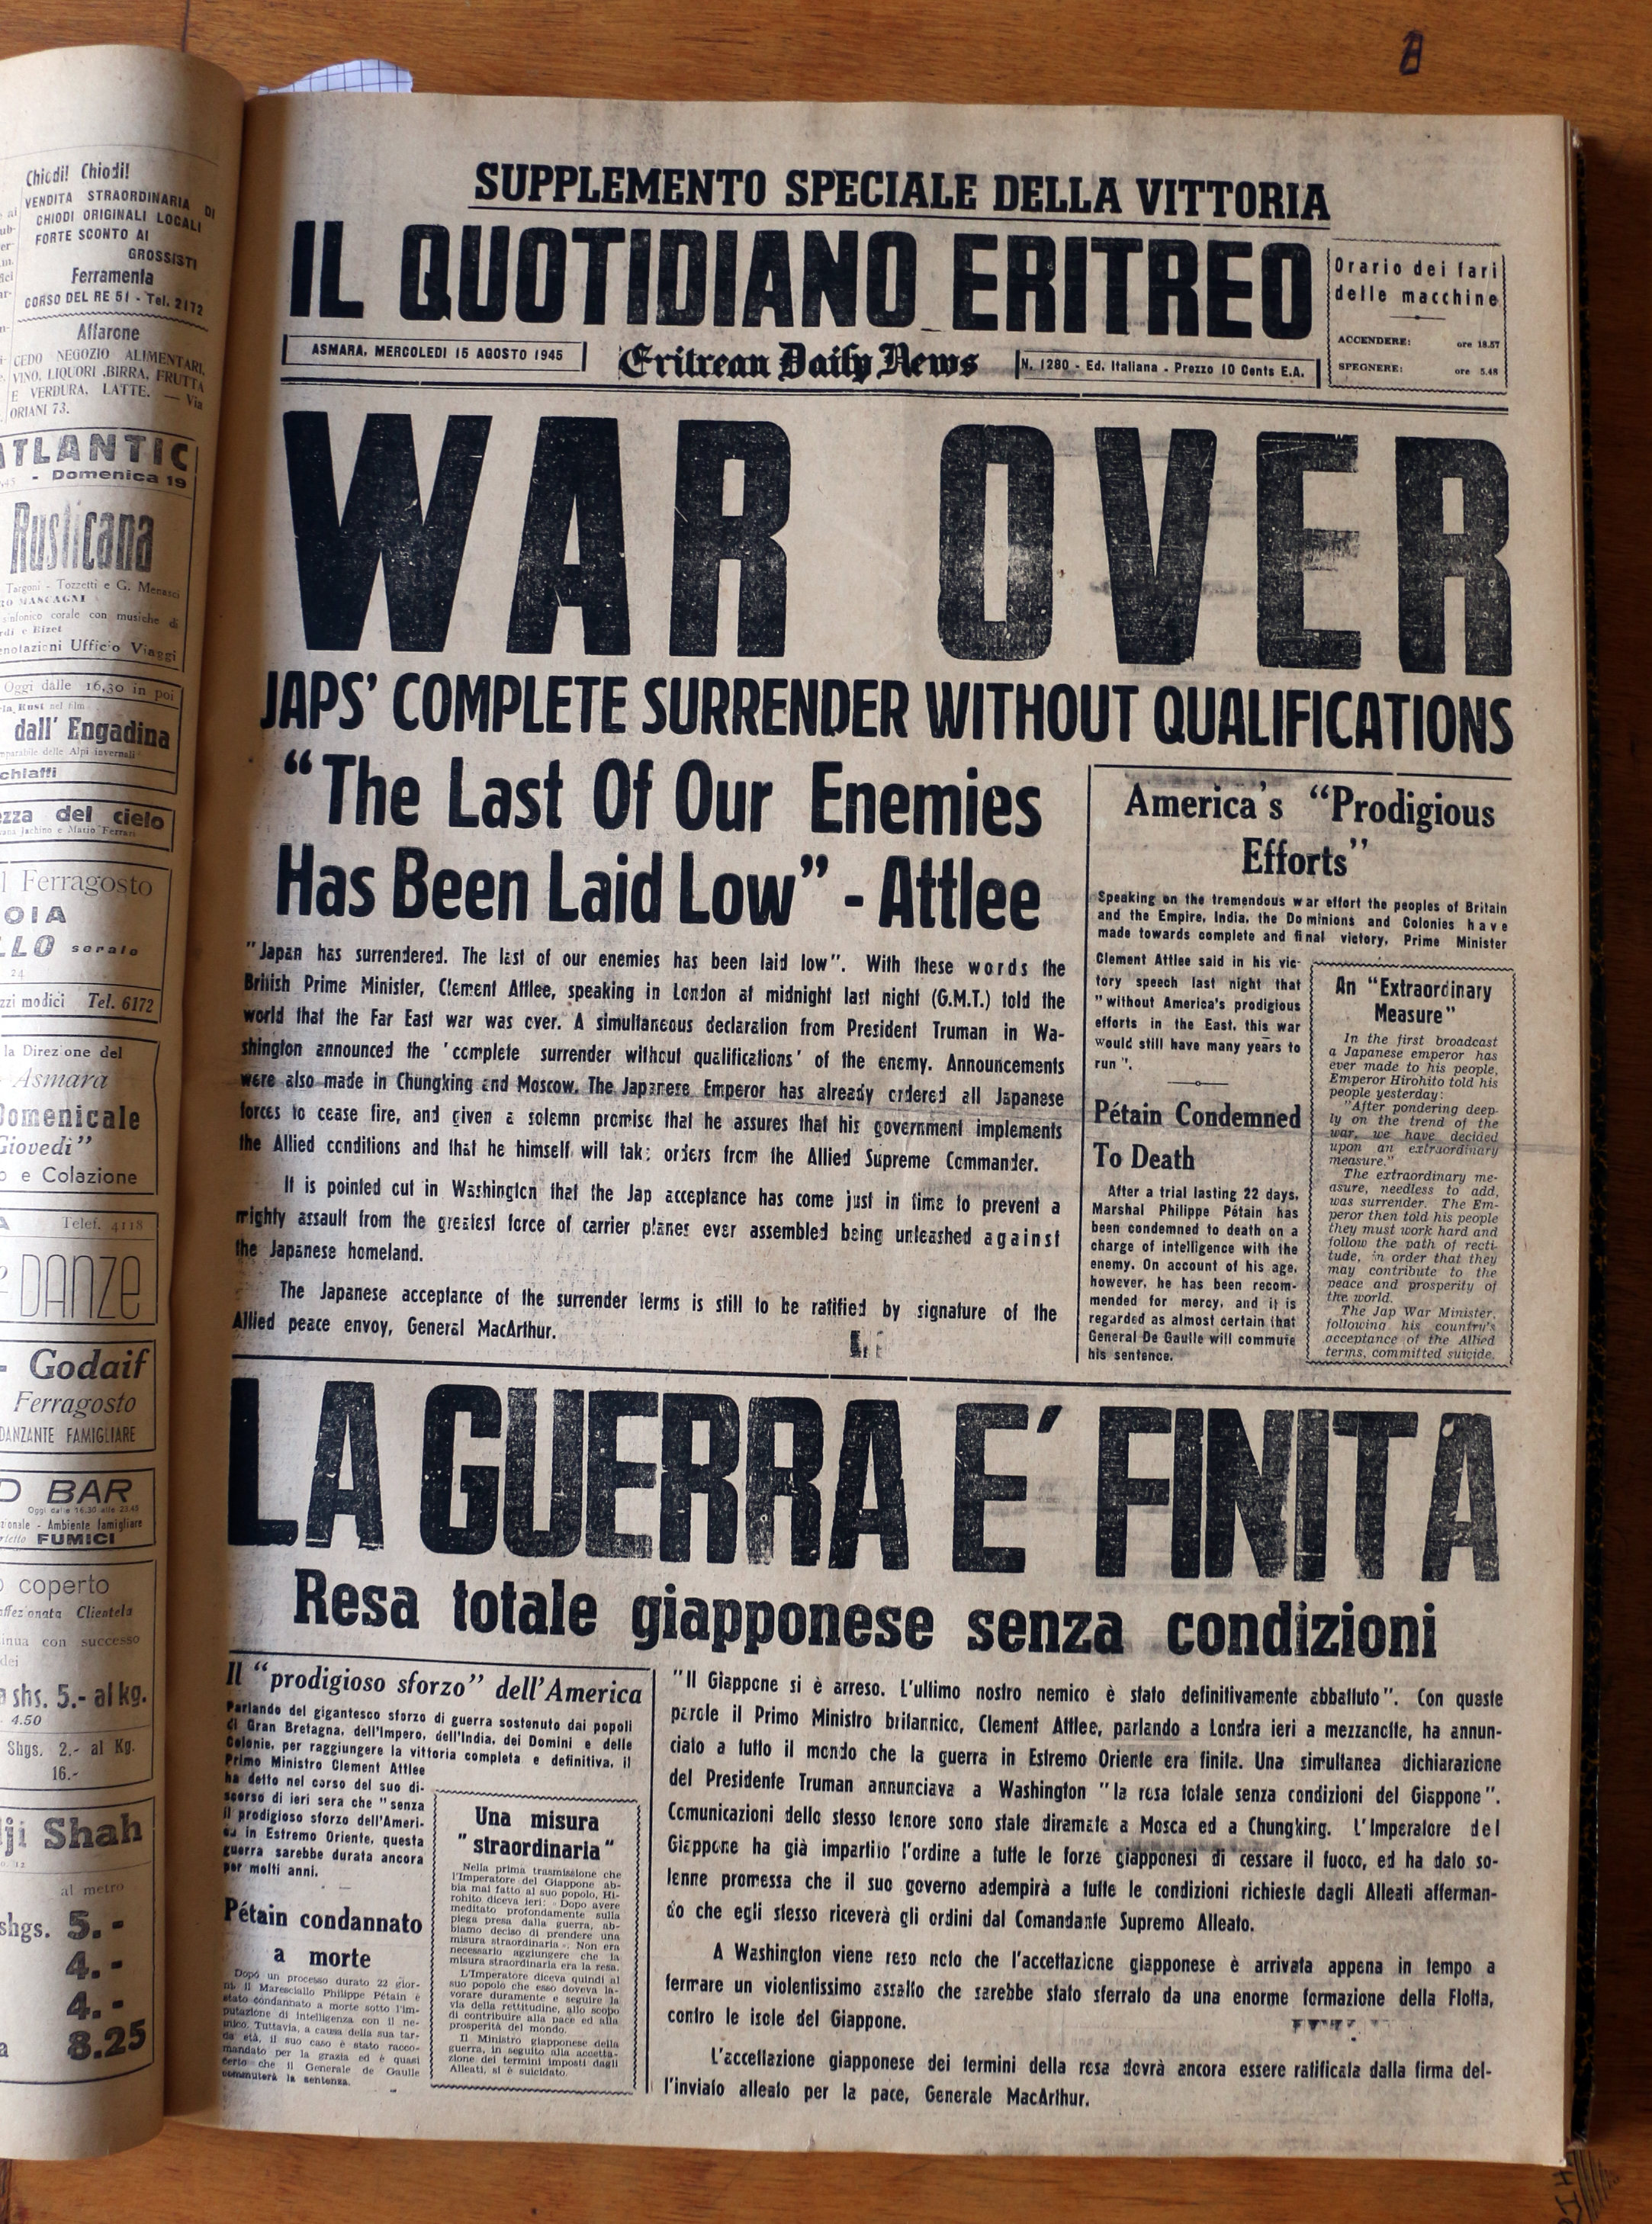 Fileil Quotidiano Eritreo 15 Agosto 1945 Fine Della